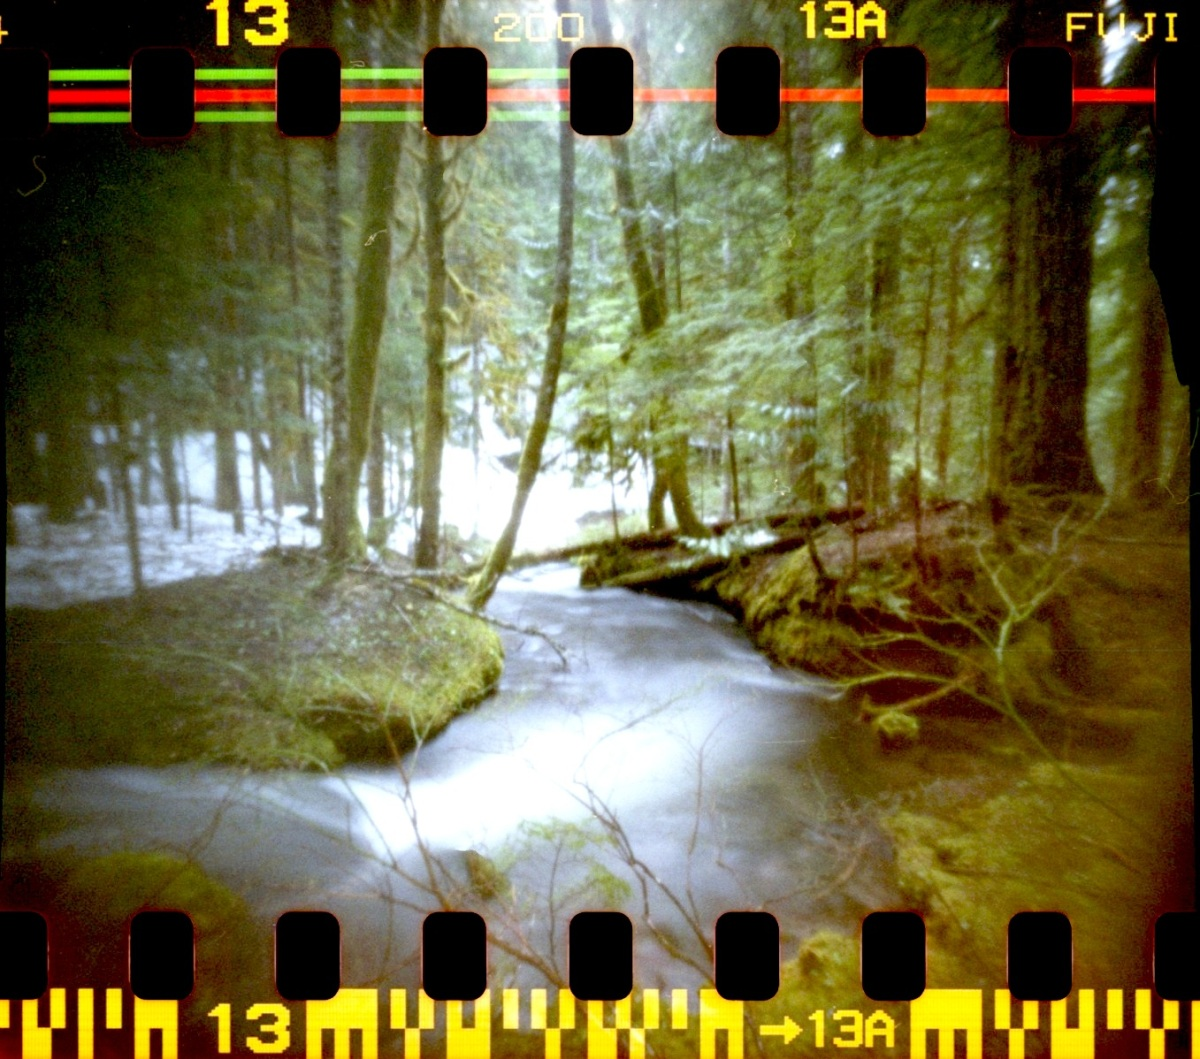 Worldwide Pinhole Photography Day!